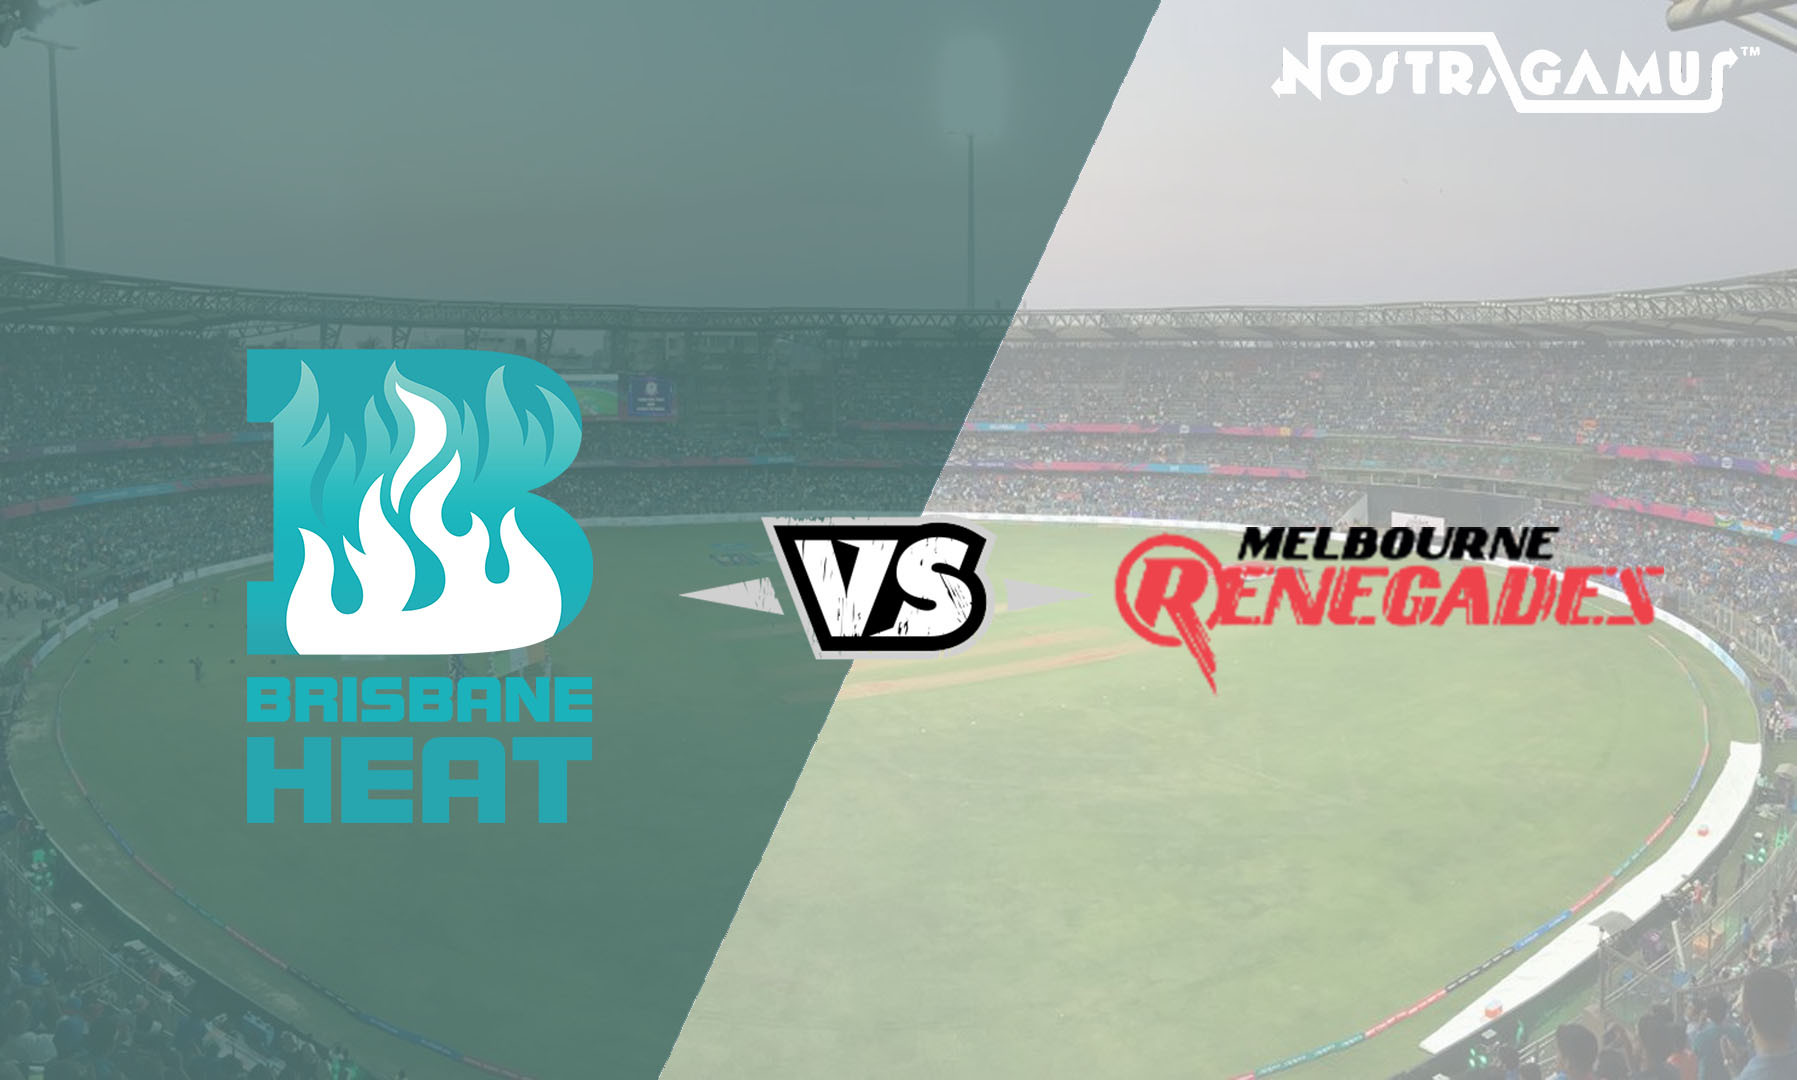 Big Bash League Predictions: Melbourne Renegades vs Brisbane Heat